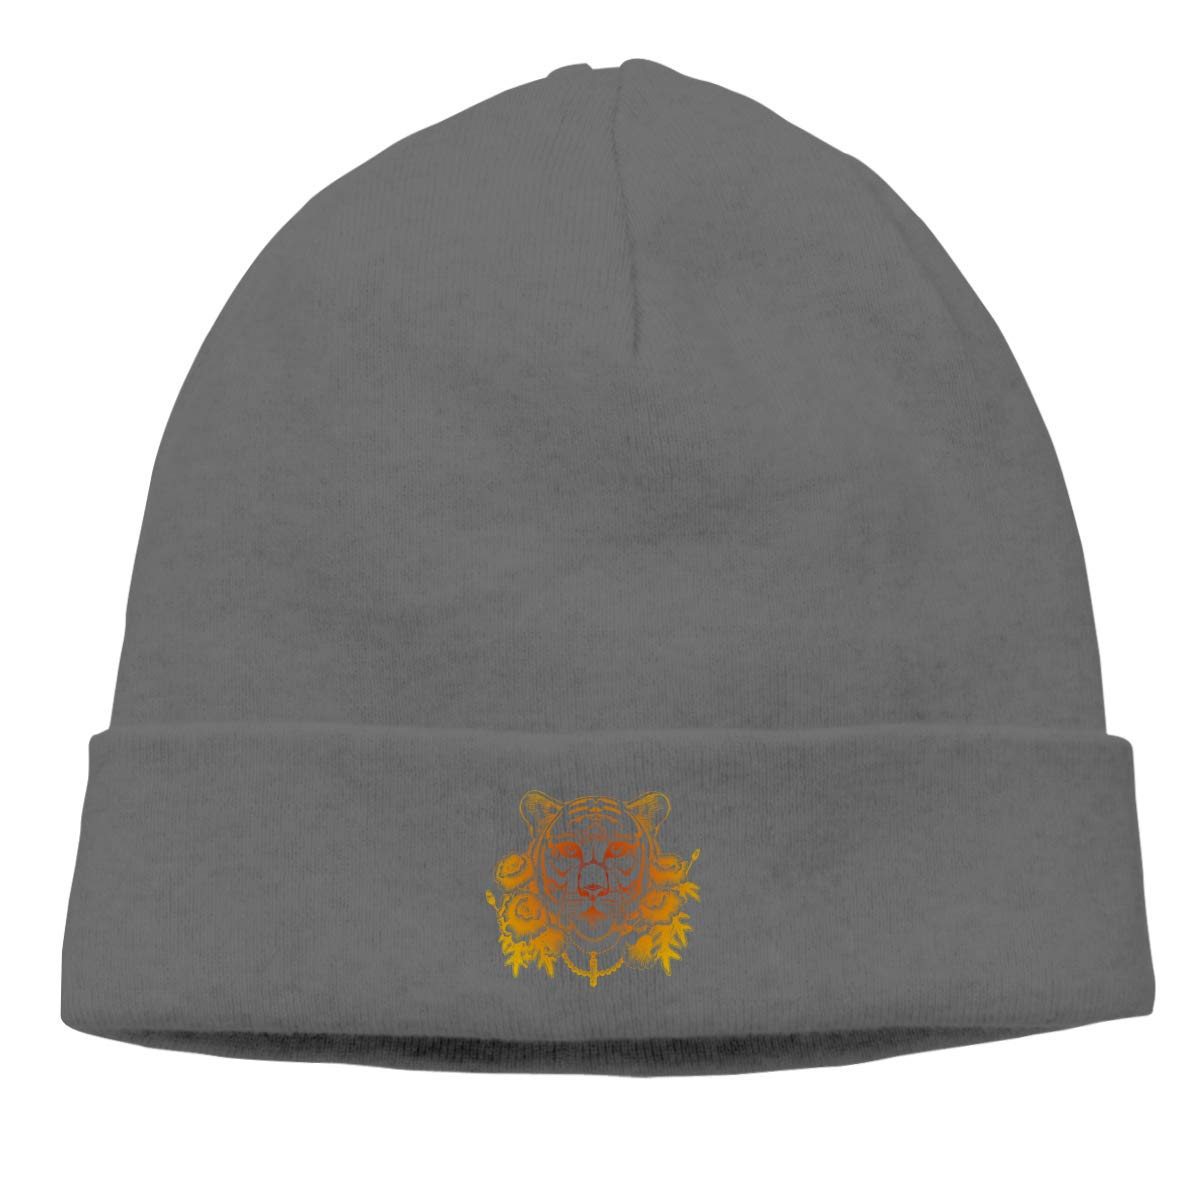 Four Golden Flowers Next to The Tiger Knit Caps Knit Hat Skull for Mens